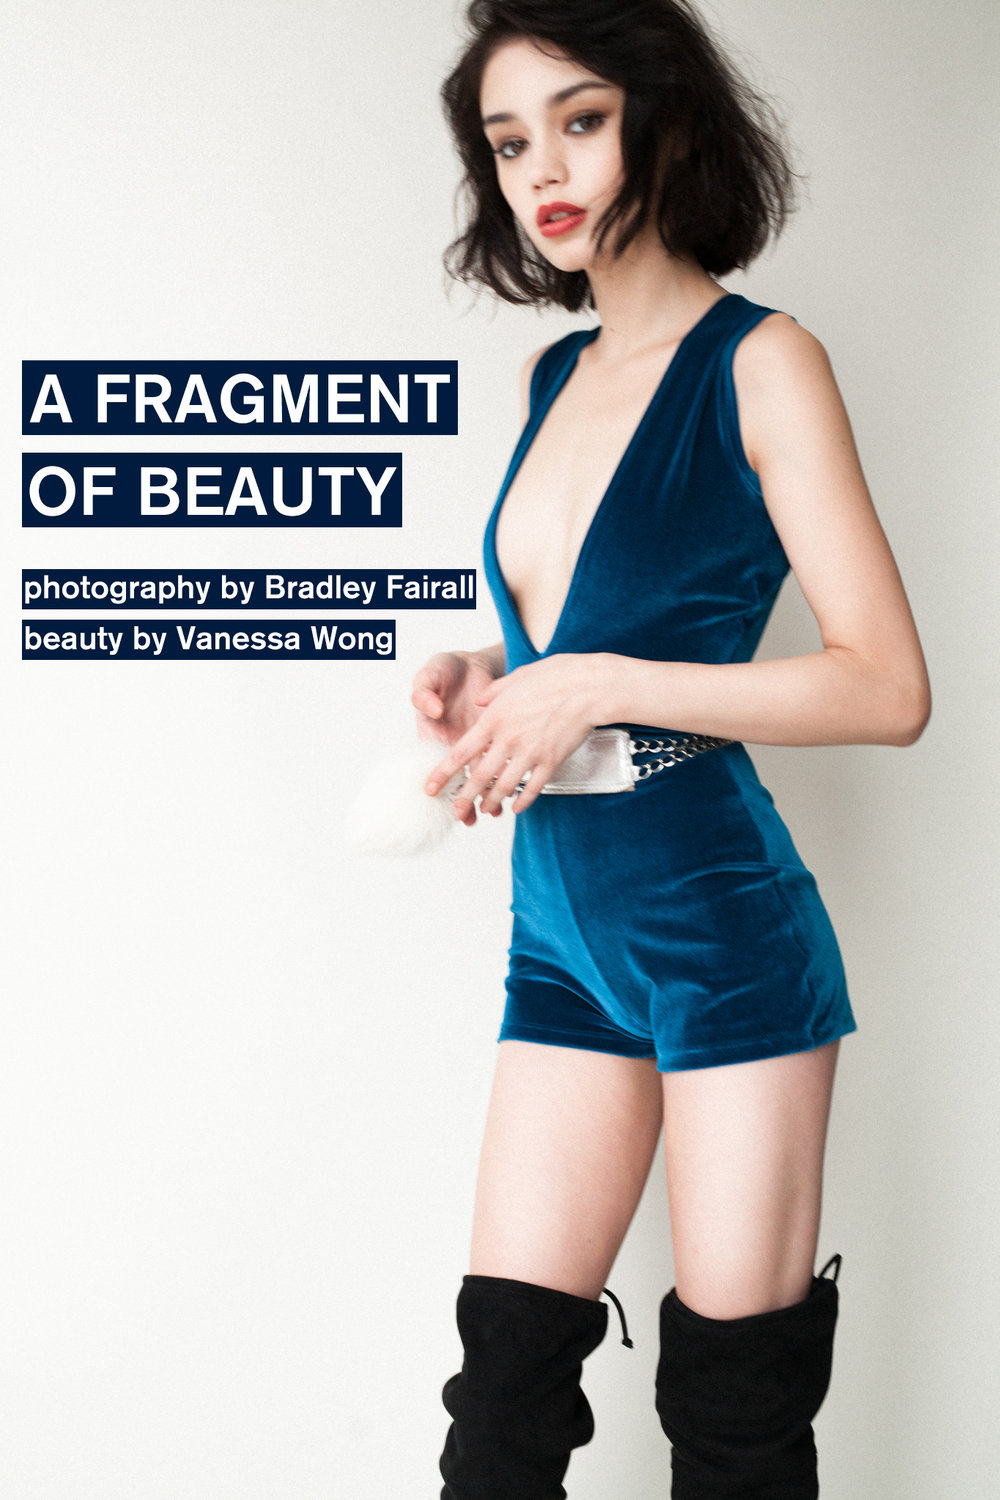 a-fragment-of-beauty-by-bradley-fairall